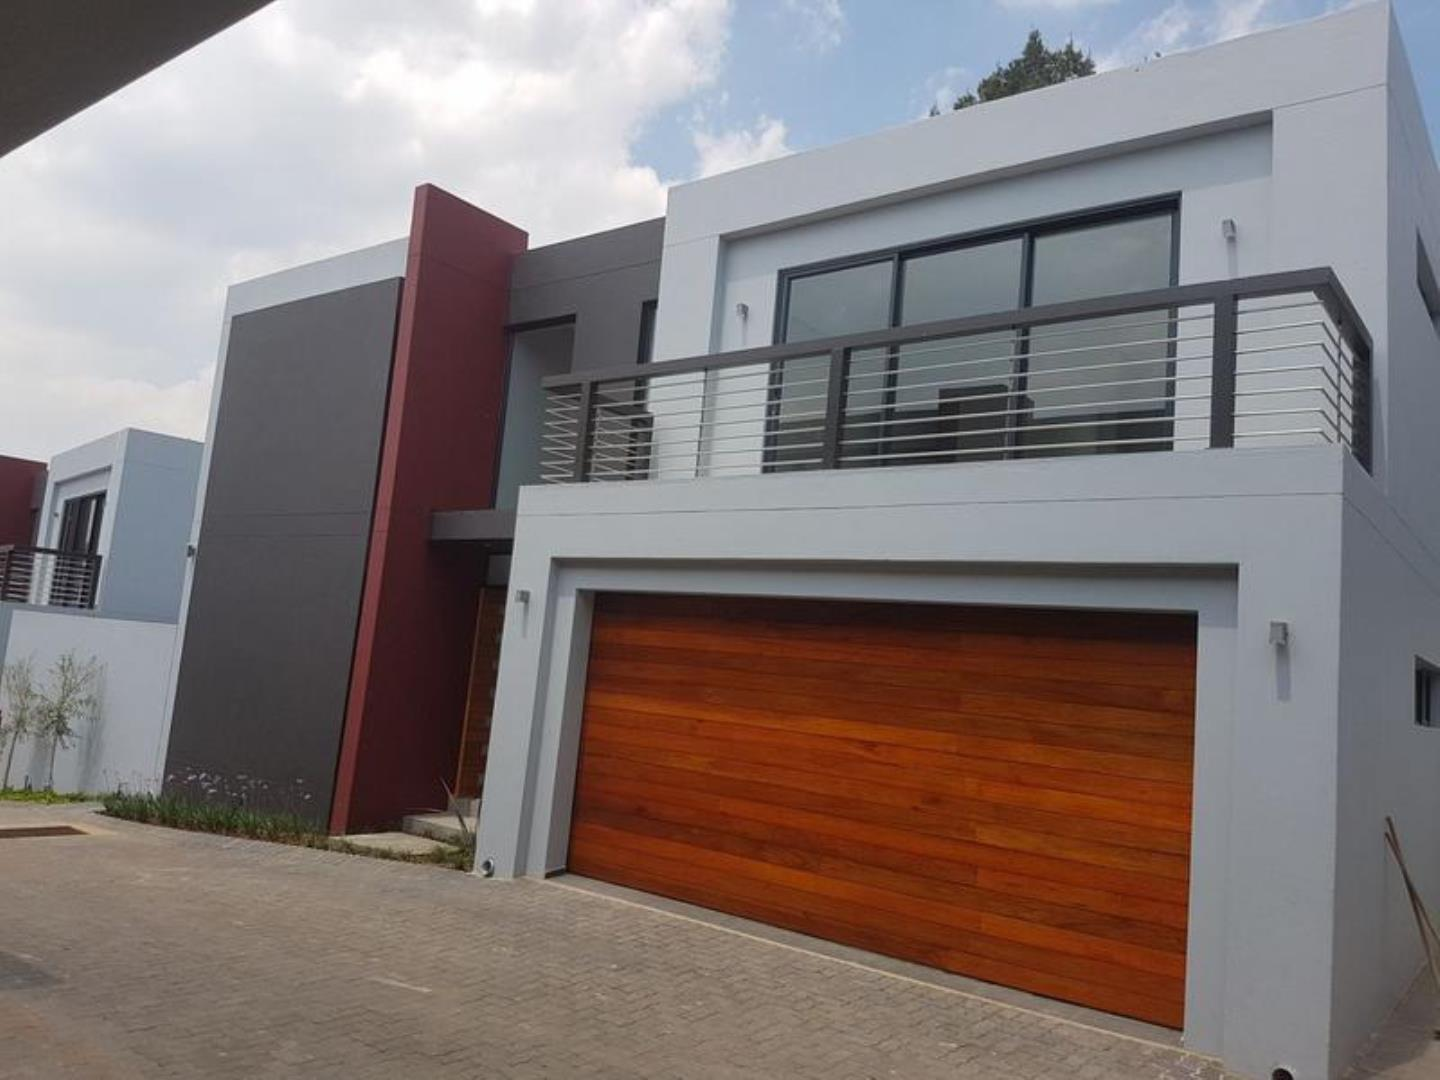 3 Bedroom  Cluster for Sale in Sandton - Gauteng